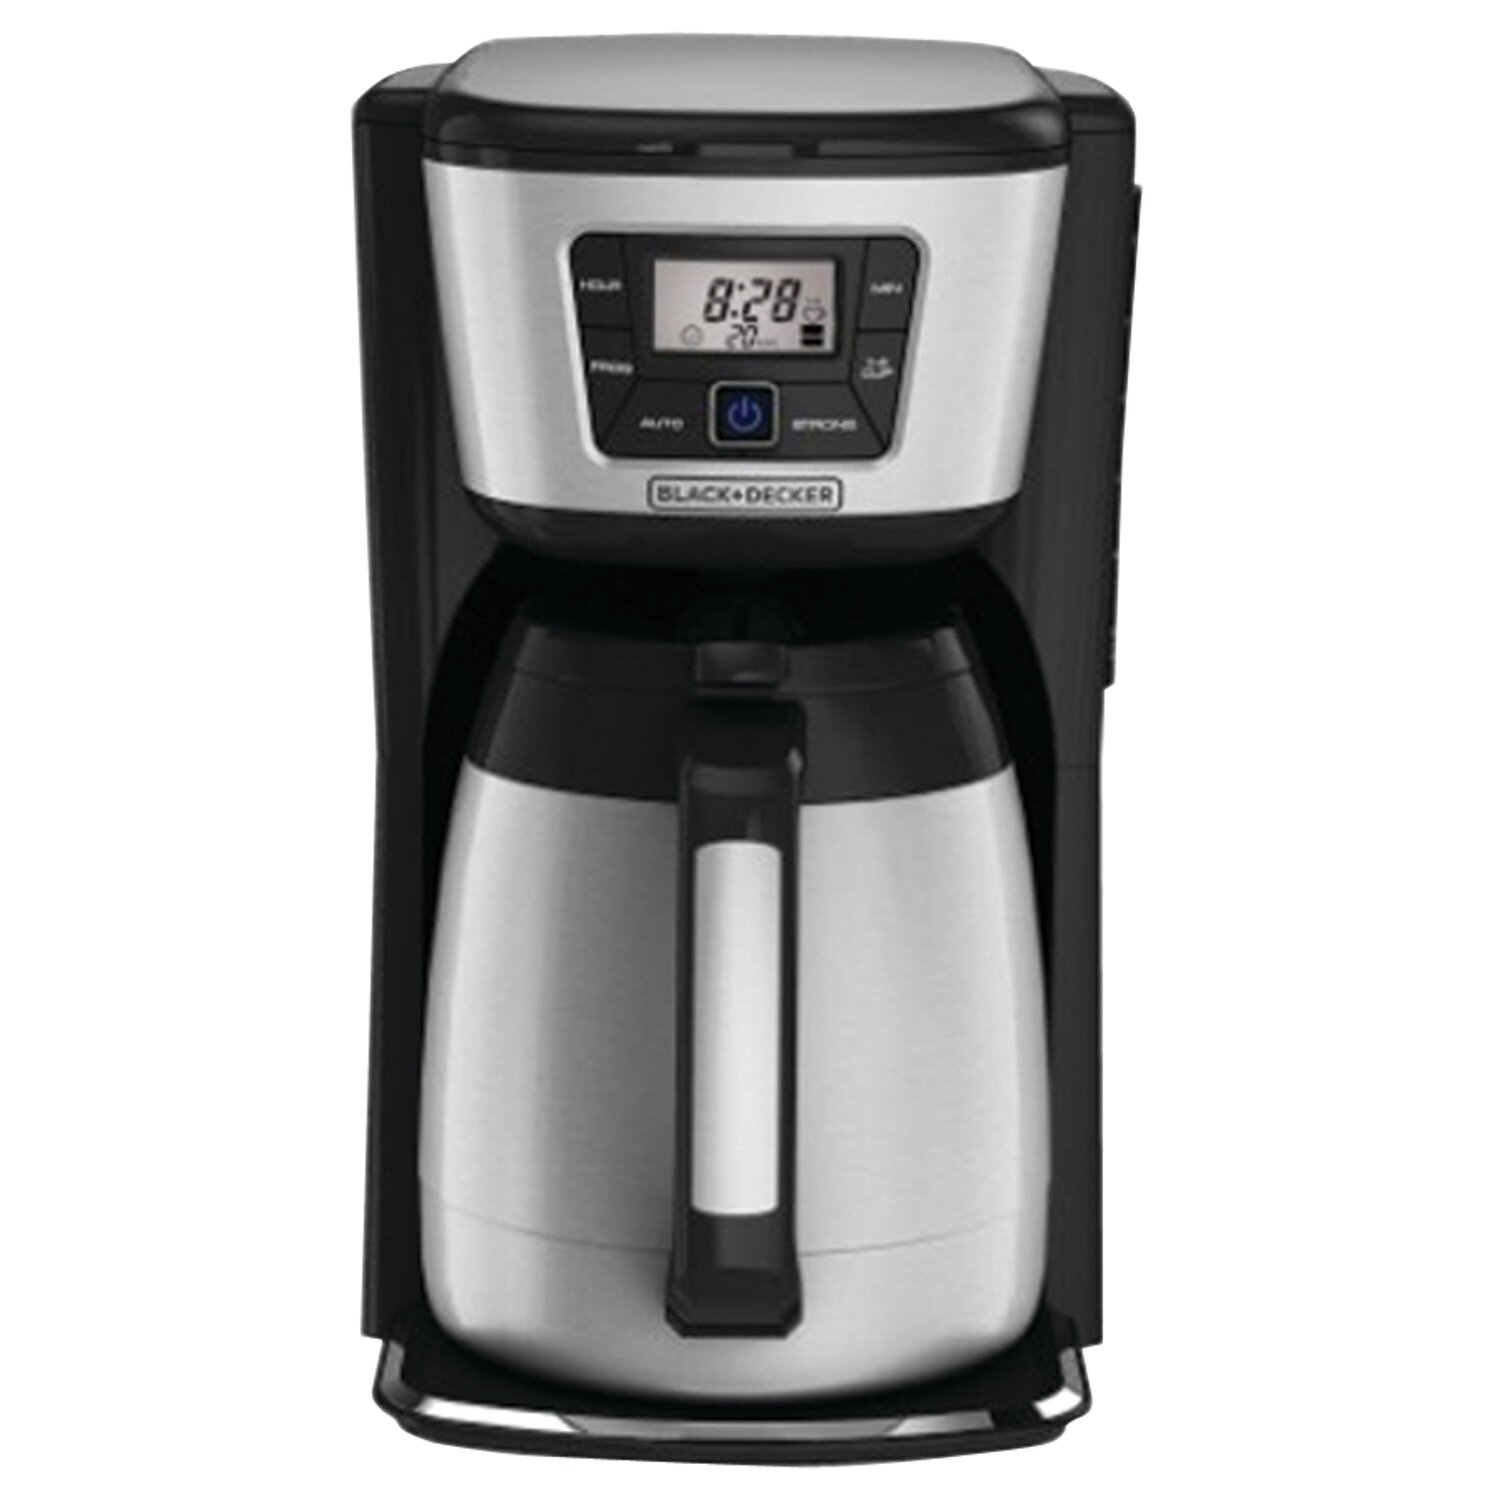 Black and decker 12 cup programmable coffee maker - Black Amp Decker 12 Cup Programmable Thermal Coffee Maker